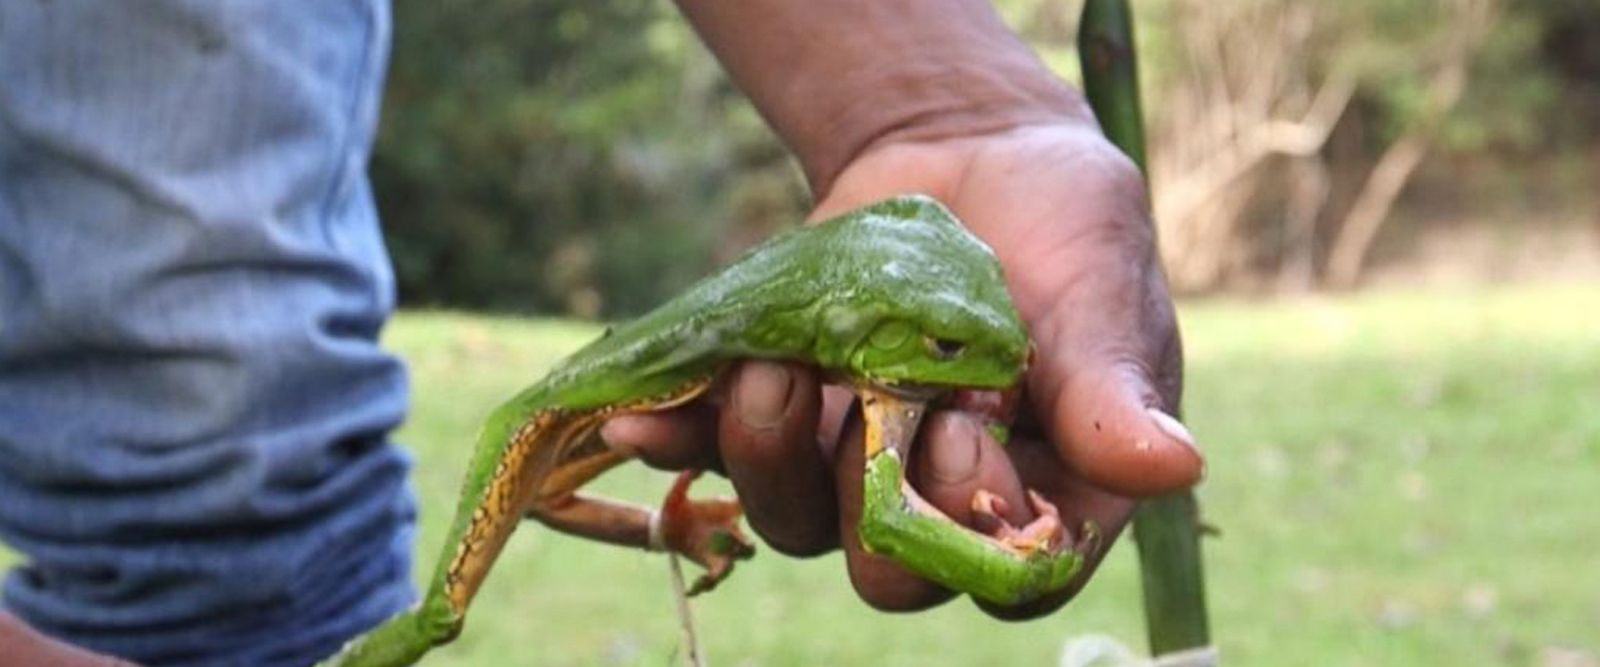 VIDEO: This Amazonian frog's toxins have become part of latest cleansing trend